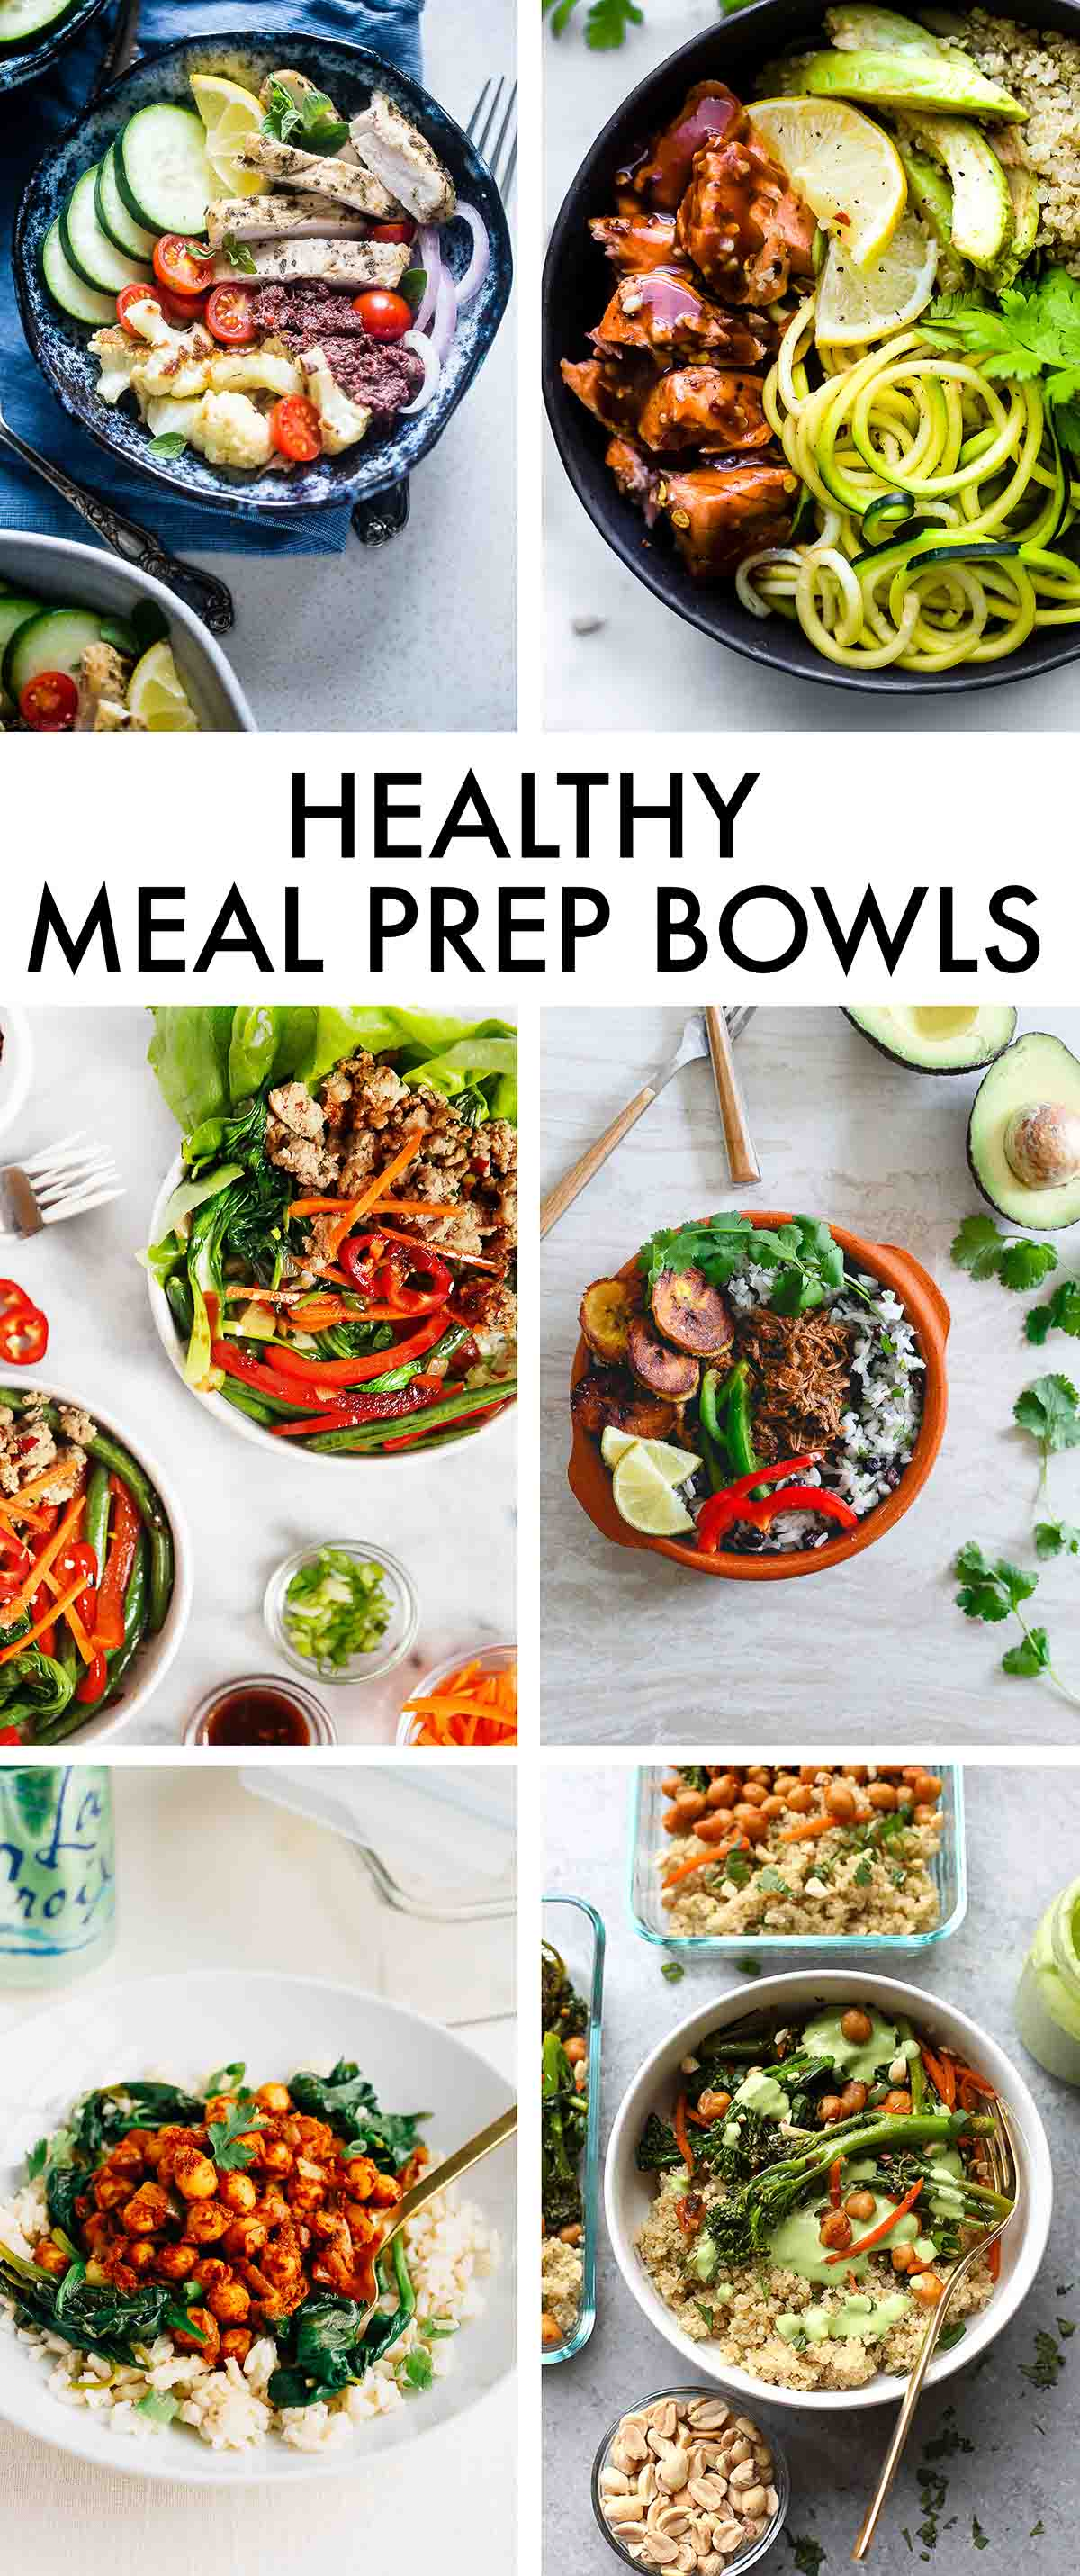 6 Healthy Meal Prep Bowl dinner ideas. From chicken to beef to salmon and chickpeas, there's something for everyone in this roundup!